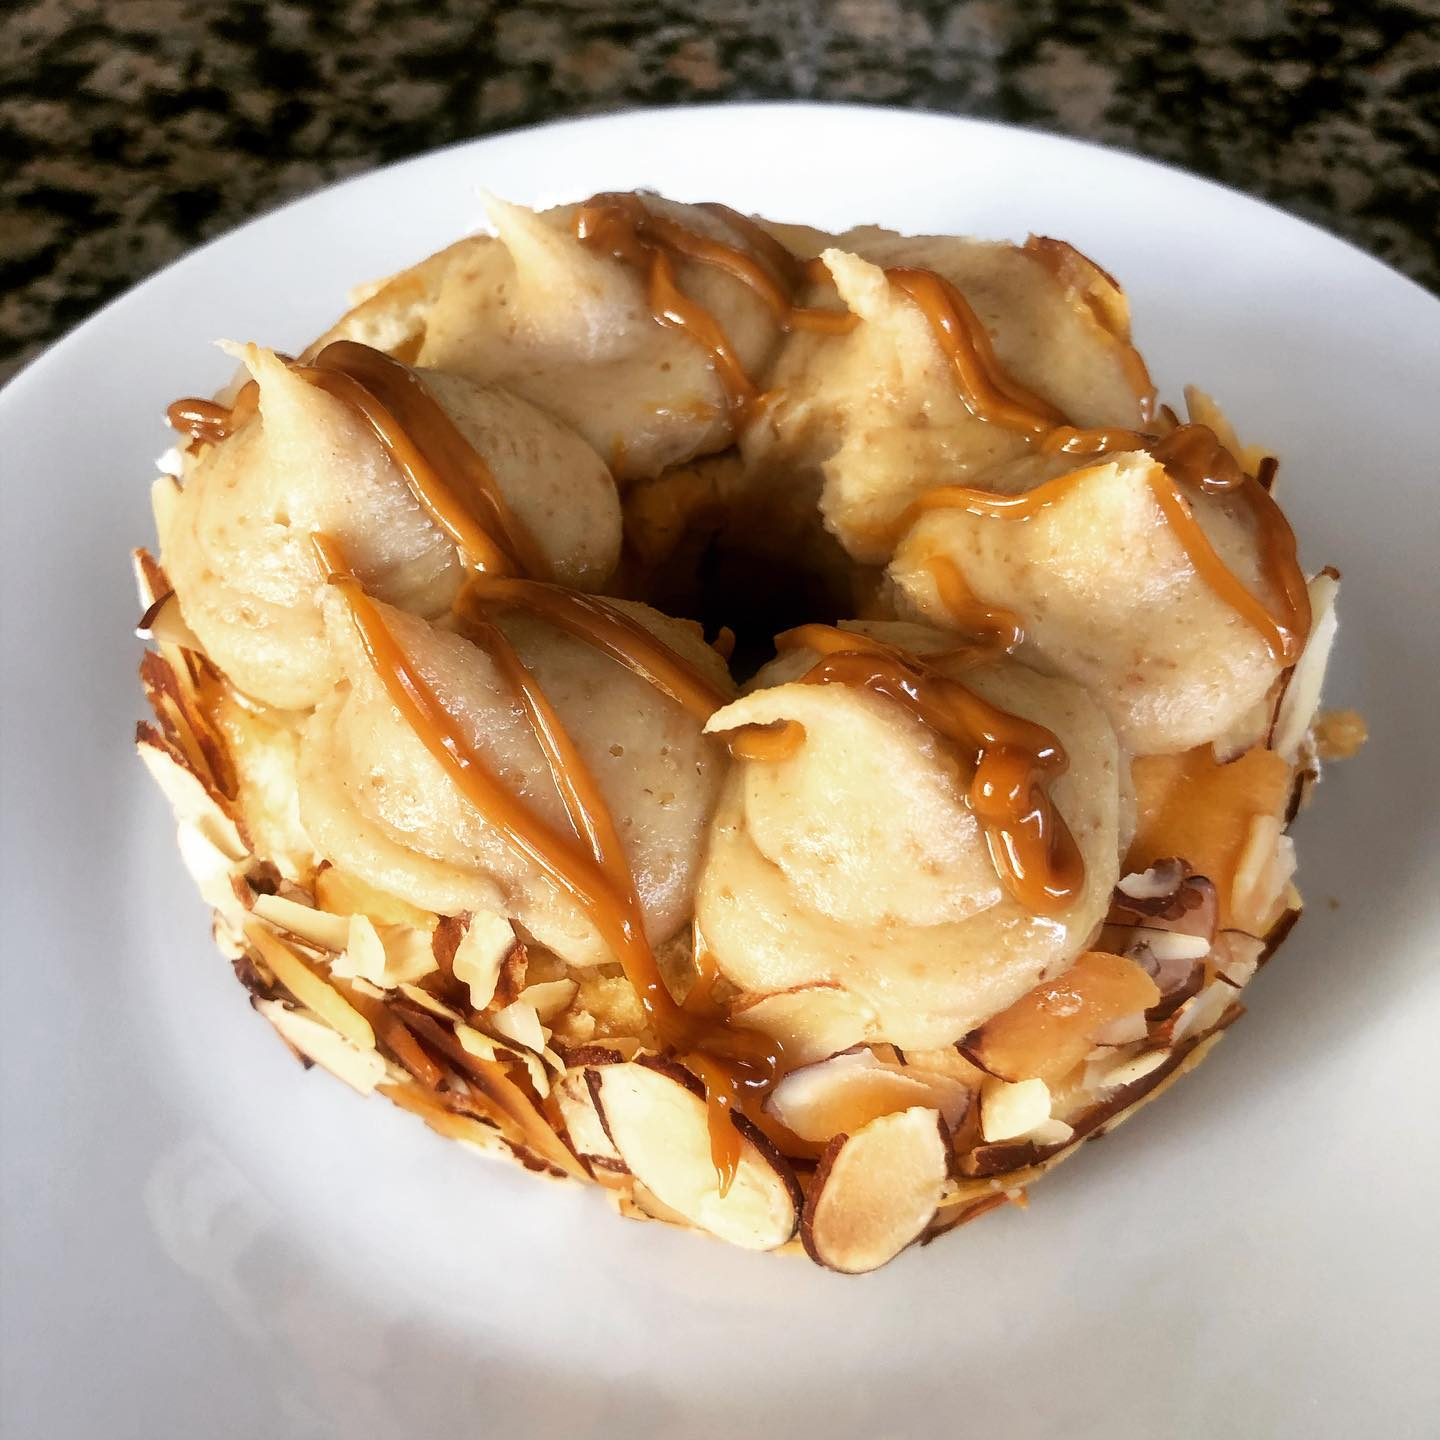 It's a cheesecake donut for breakfast kind of day